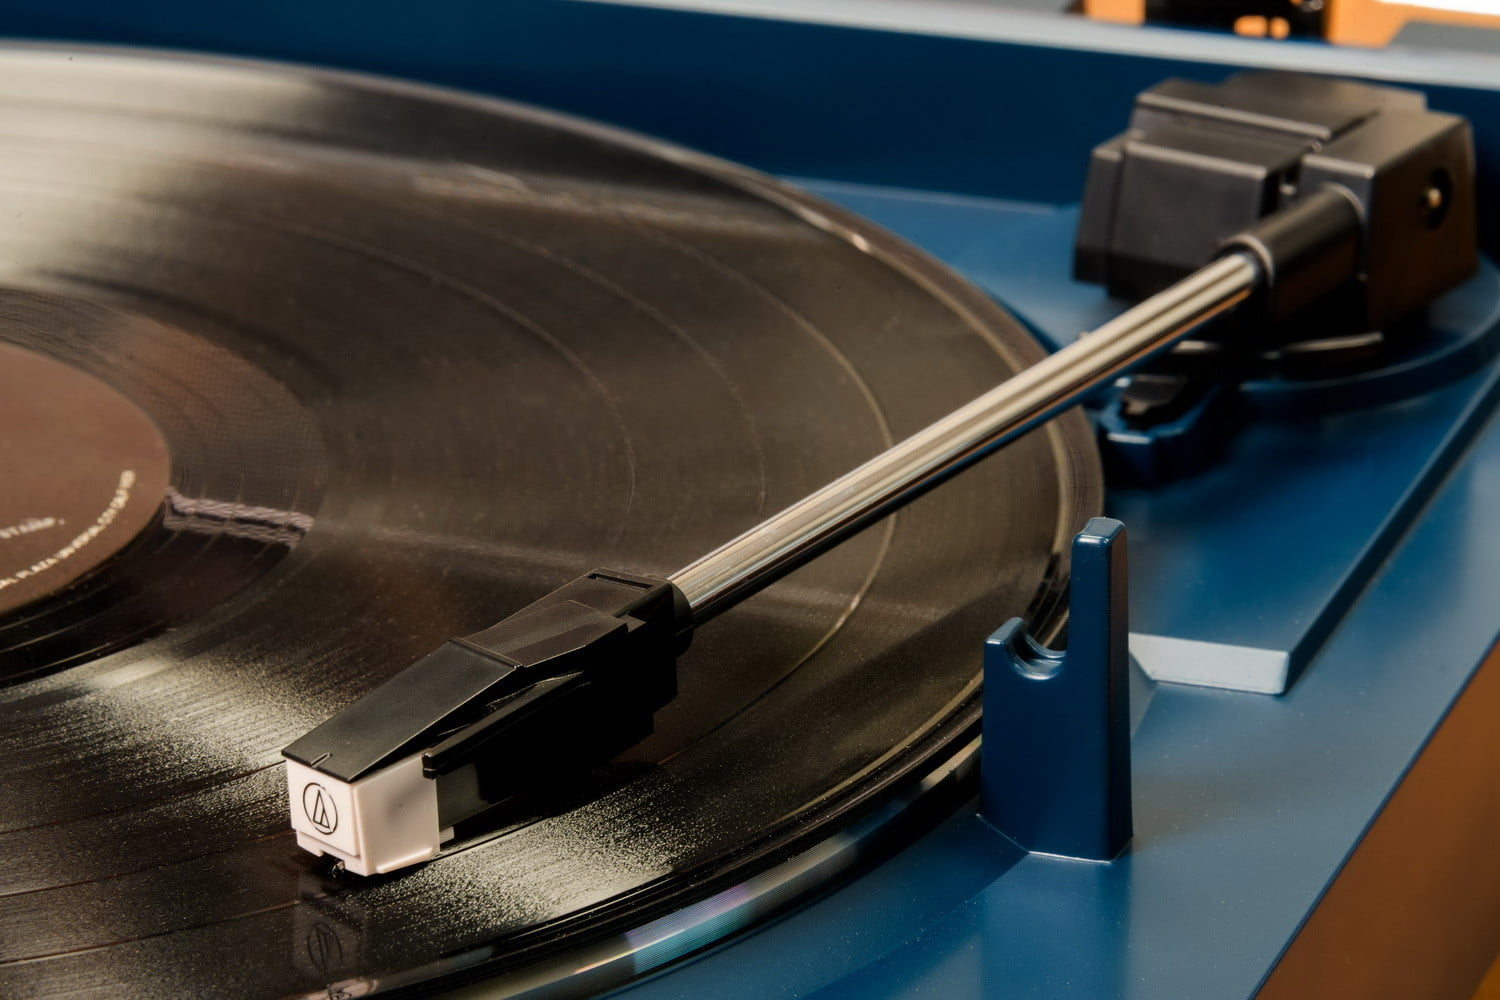 How to Convert Your Vinyl to a Digital Format | Digital Trends